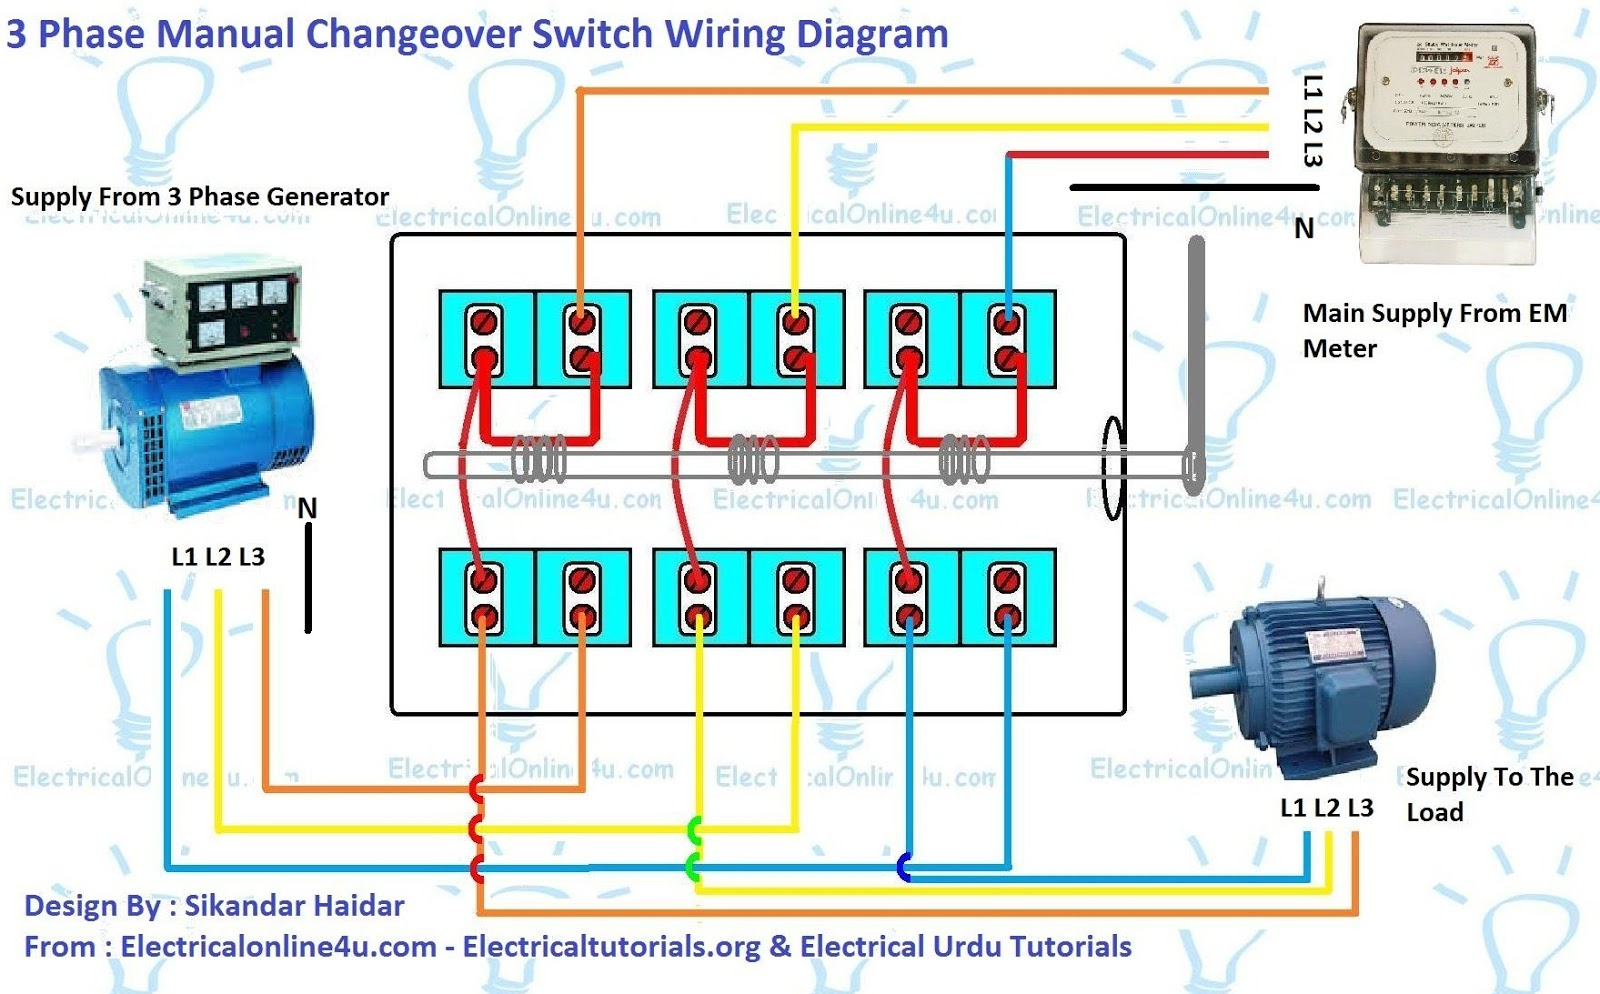 3%2Bphase%2Bmanual%2Bchangeover%2Bswitch%2Bwiring%2Bdiagram 3 phase manual changeover switch wiring diagram for generator generator changeover switch wiring diagram at fashall.co